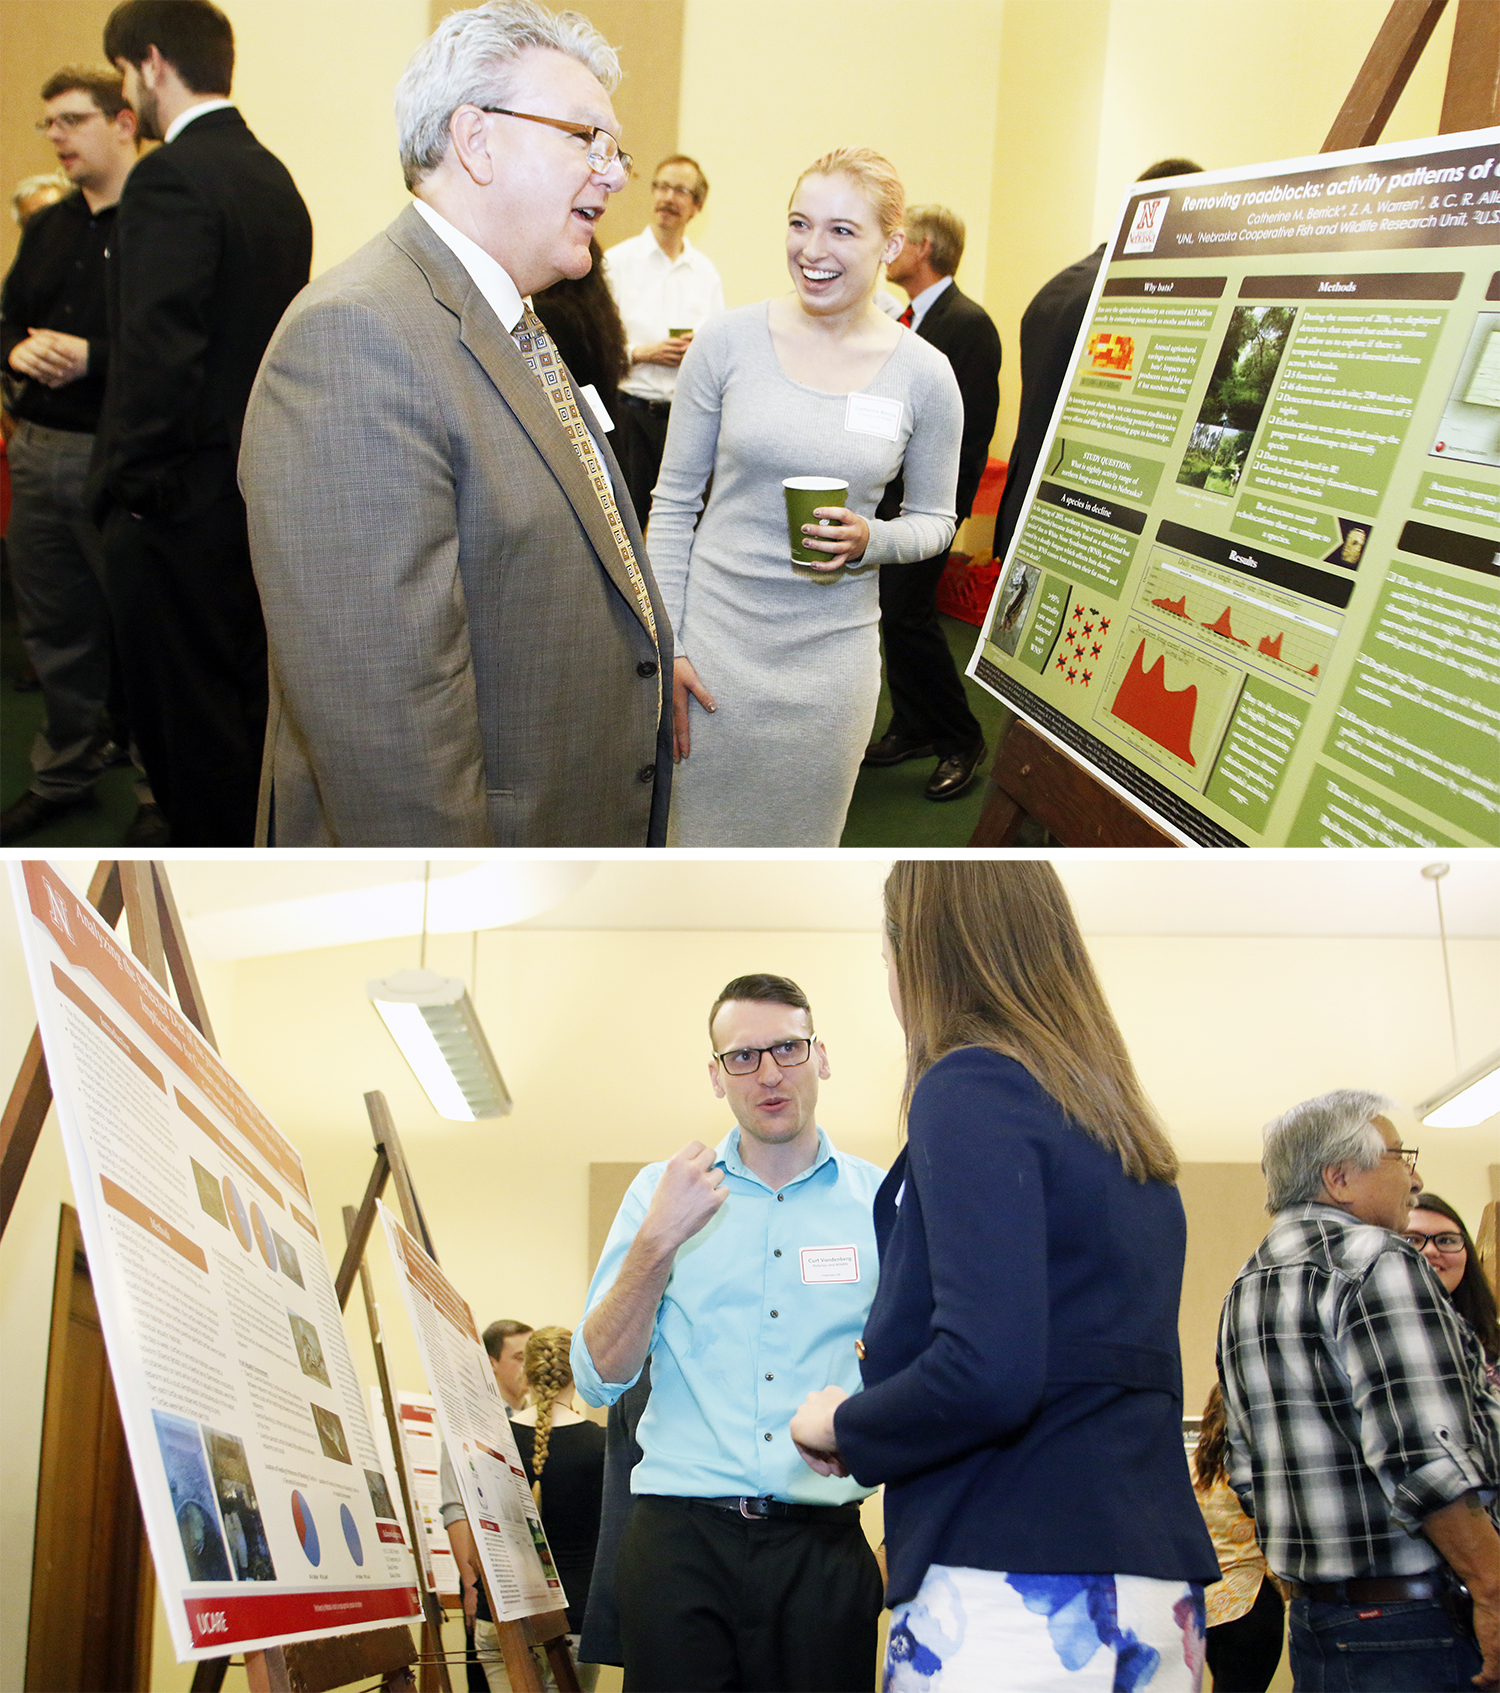 Cat Berrick (top photo) presents her research to Speaker of the Unicameral Jim Scheer; below, Curt Vandenberg presents his research to Sen. Anna Wishart, District 27, on Thursday morning at the Nebraska State Capitol in Lincoln. | Shawna Richter-Ryerson,